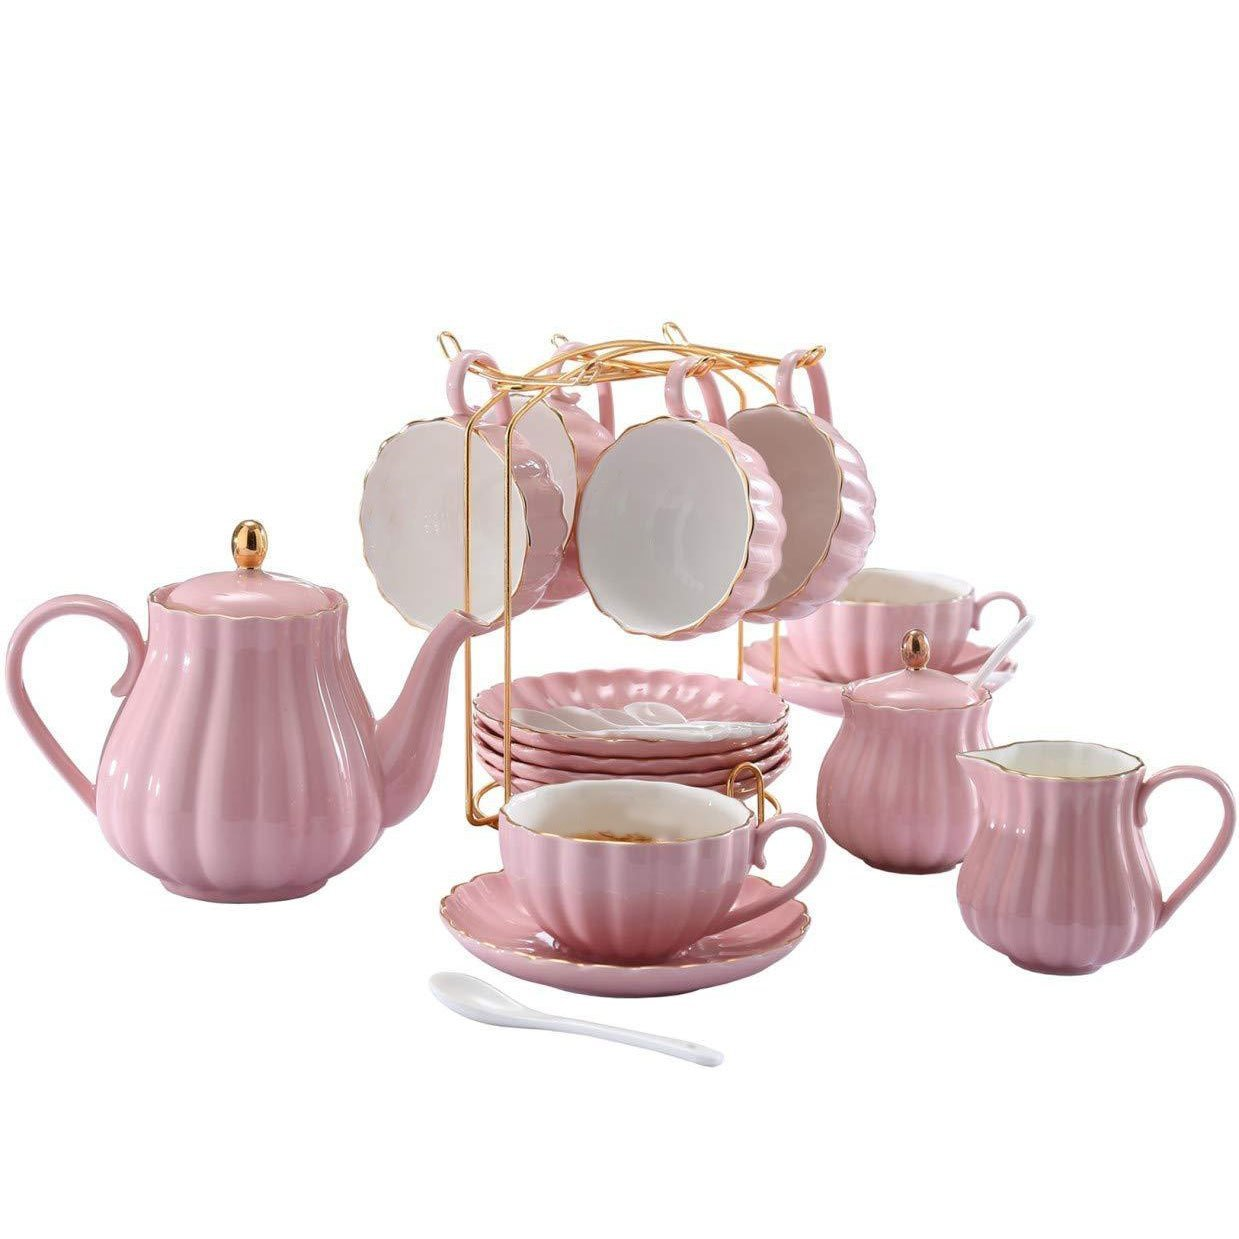 Porcelain Tea Sets With Tea Strainer(Pink)